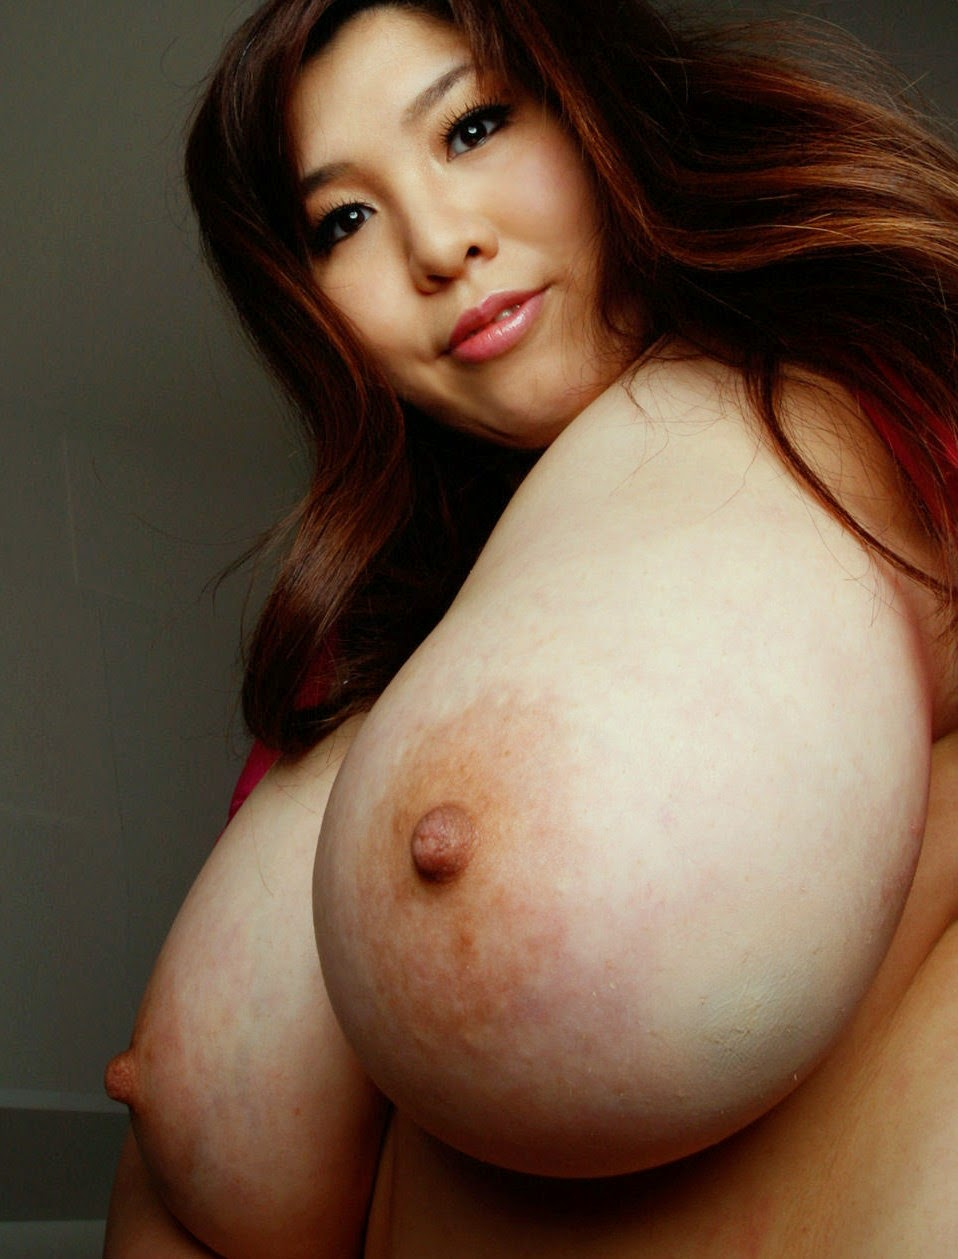 Love asian american big tits fuckin hot